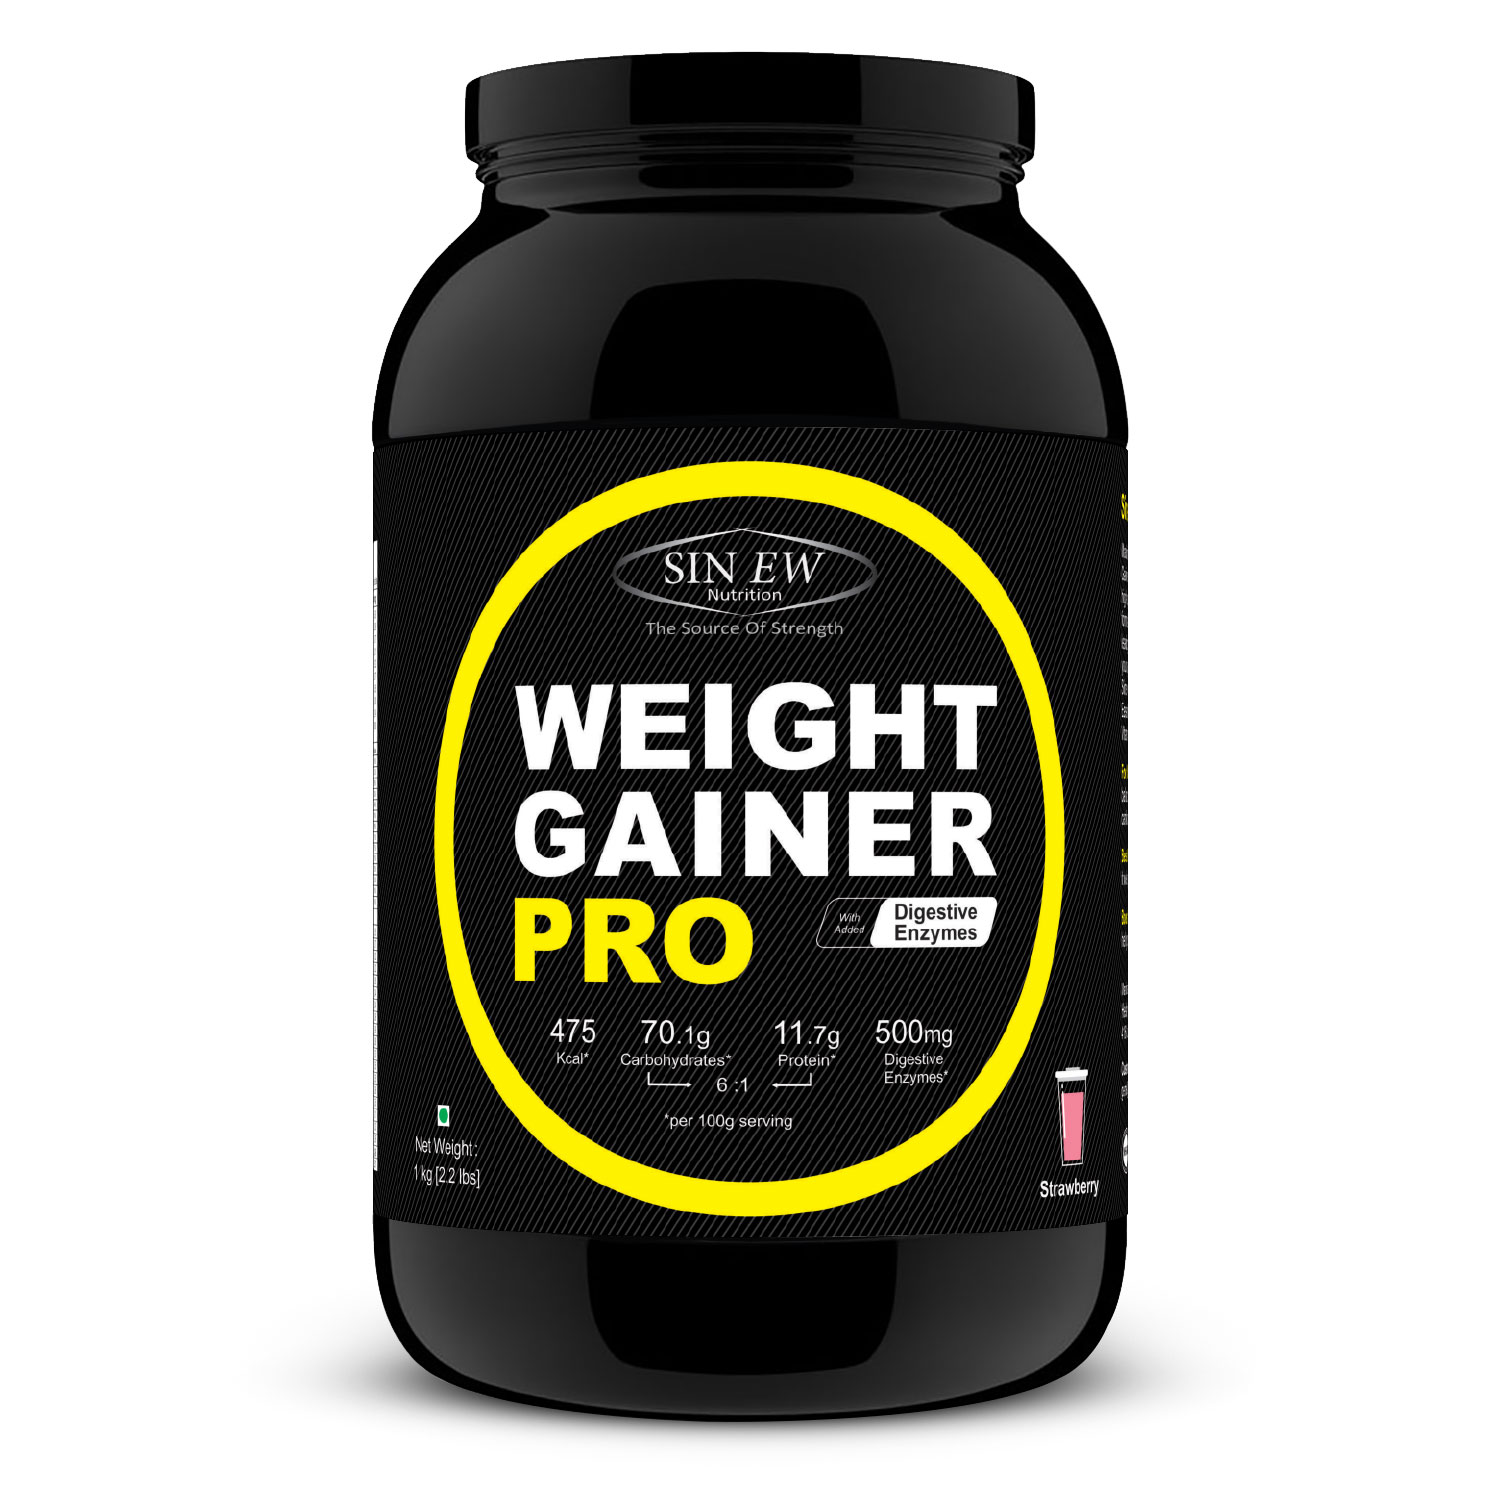 Weight Gainer Pro (strawberry) 1 F